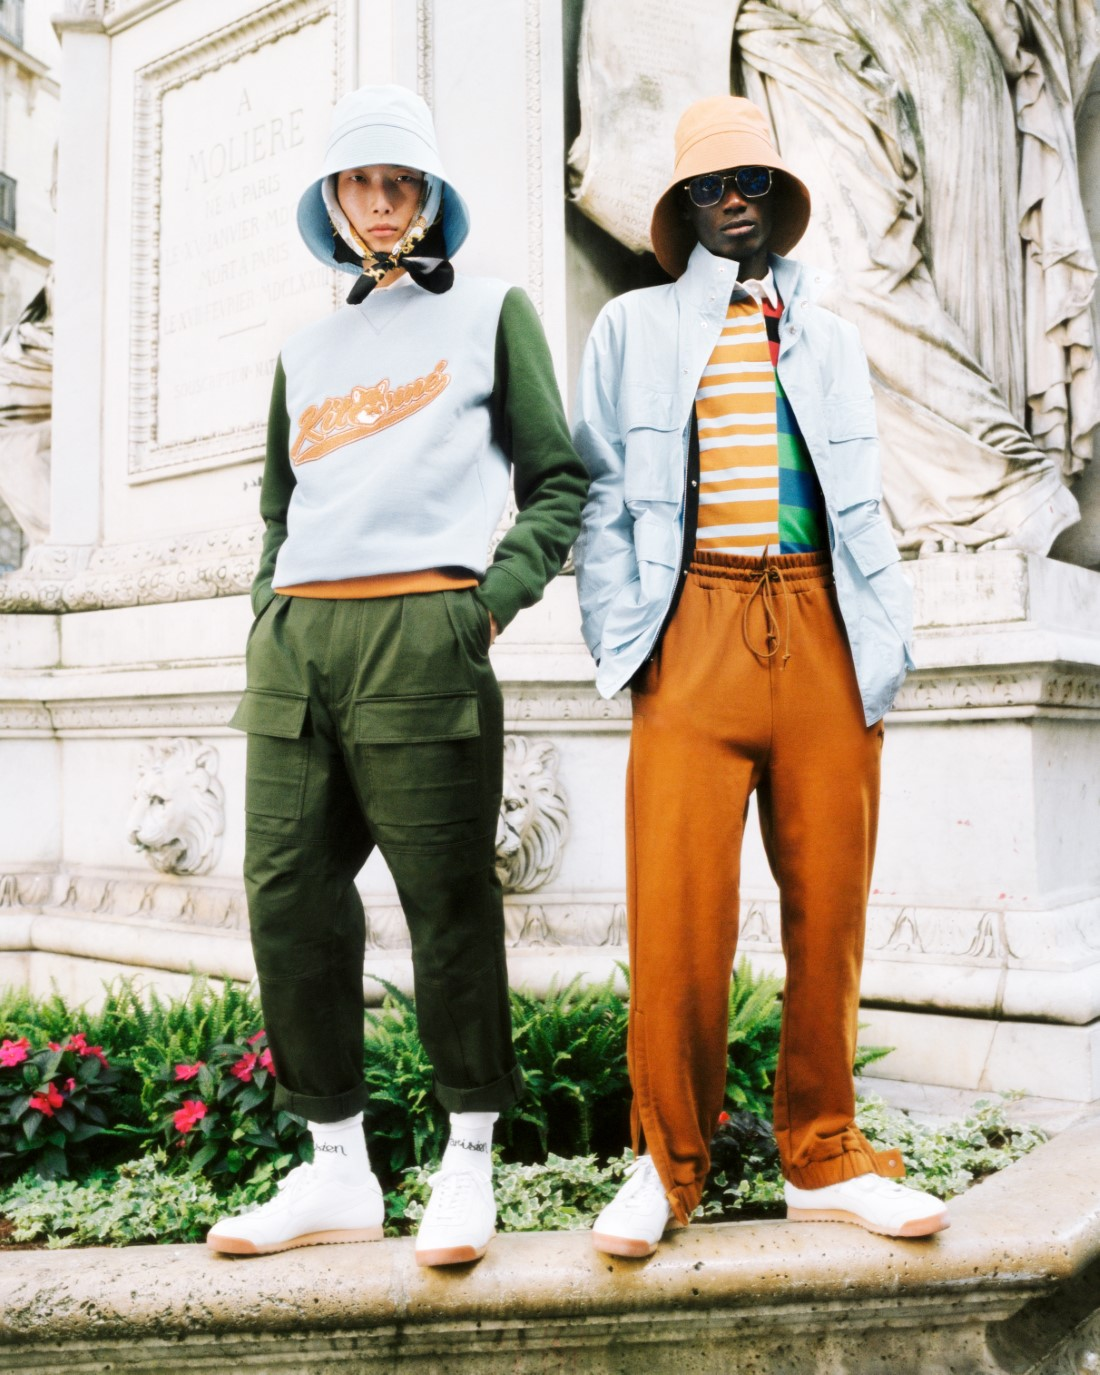 Maison Kitsuné - Printemps-Été 2021 - Paris Fashion Week